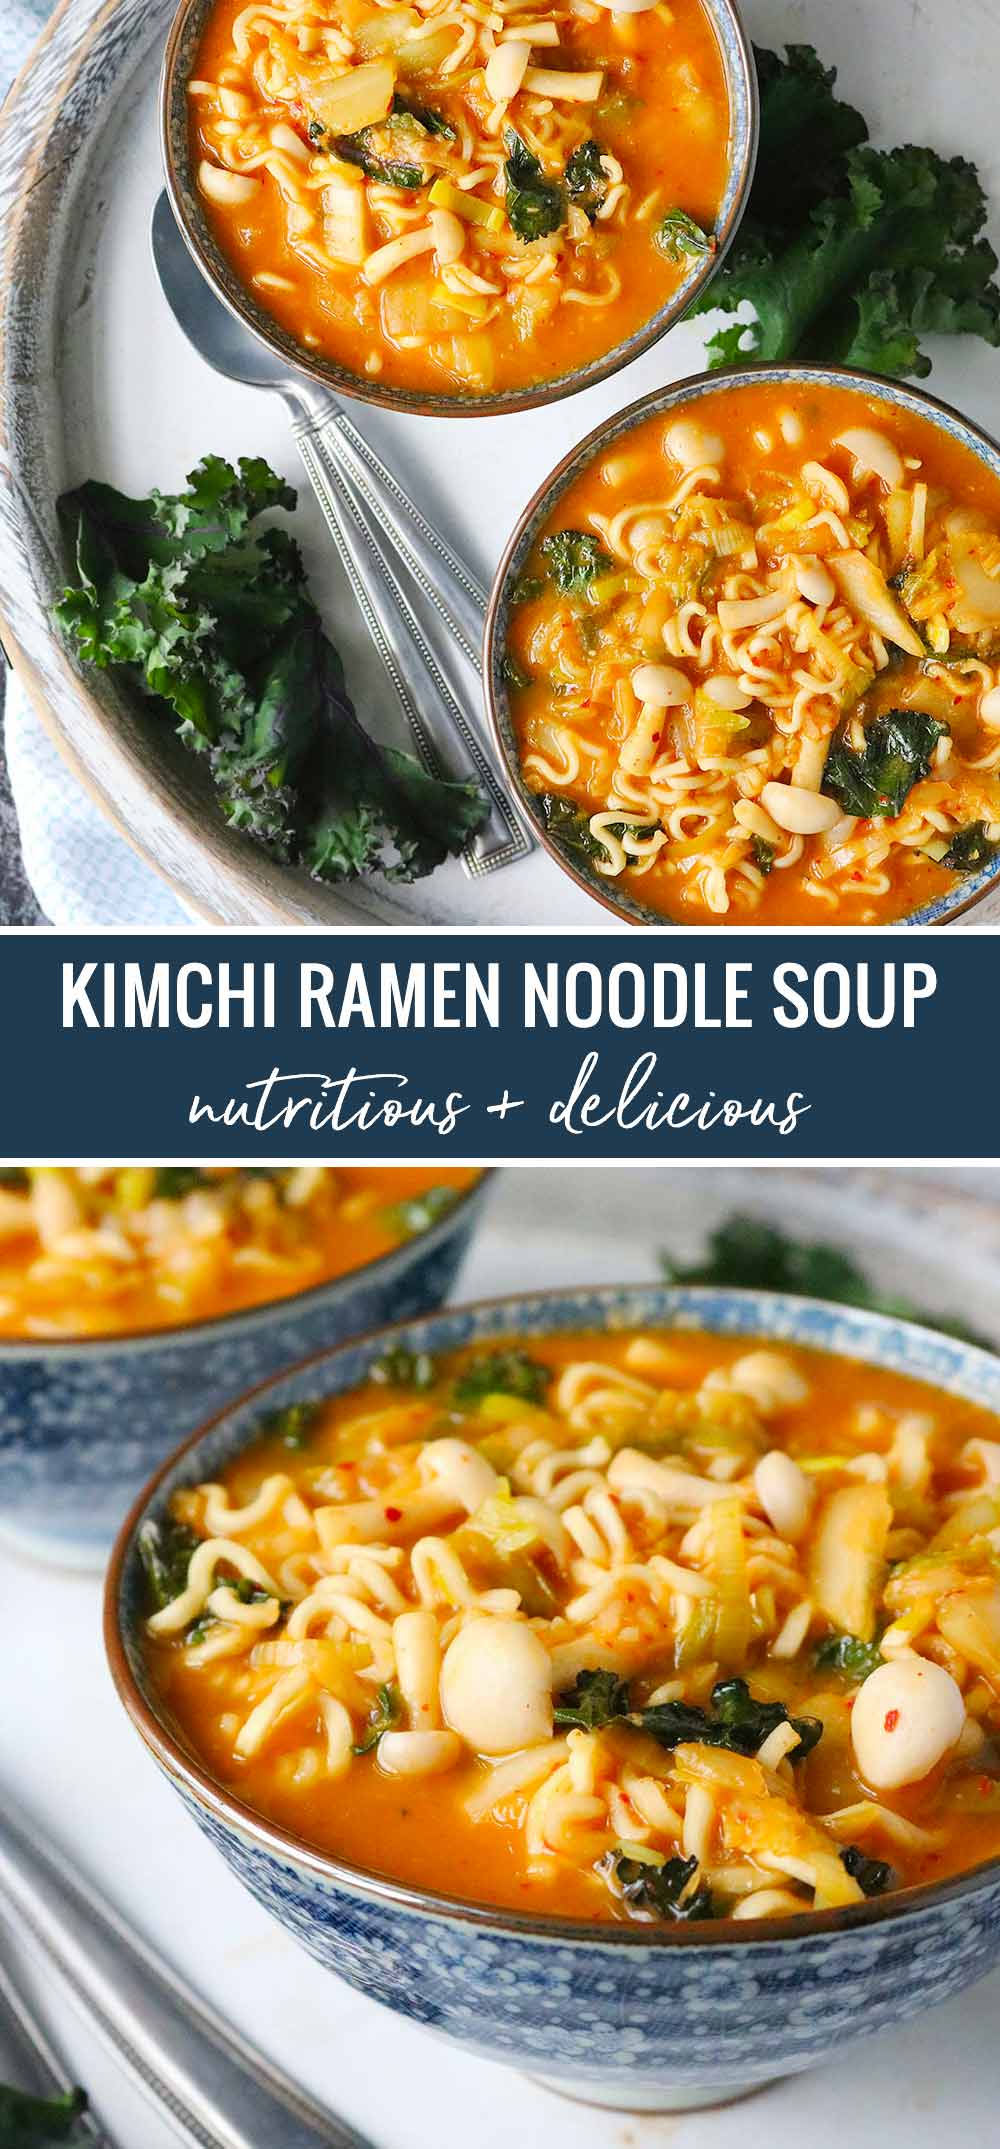 Kimchi Ramen Noodle Soup image for pinning